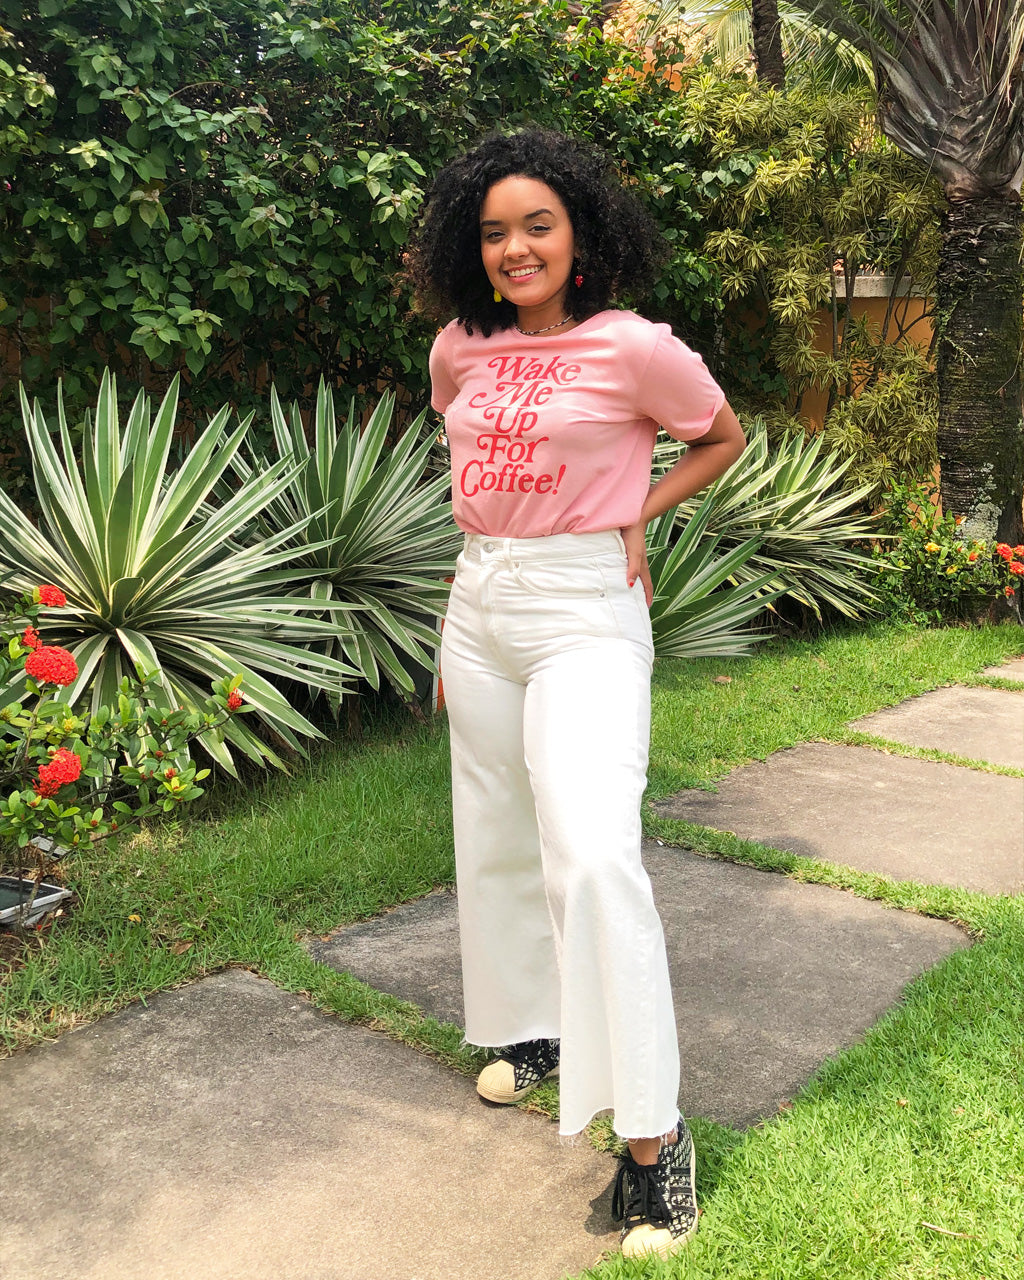 girl on a sidewalk, surrounded by plants, wearing white jeans and a pink t-shirt